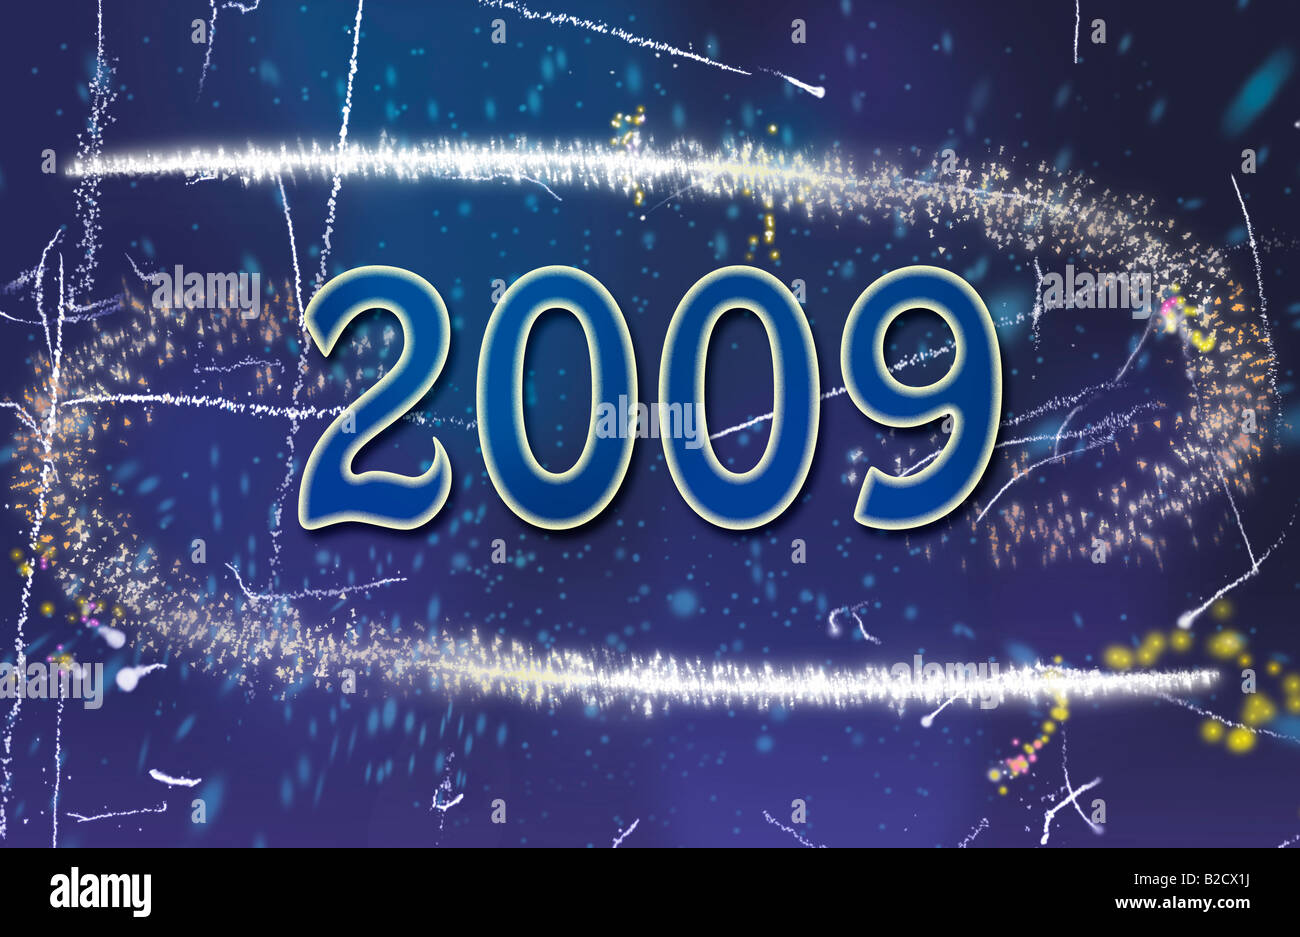 Blue Greeting Card for 2009 year - Stock Image